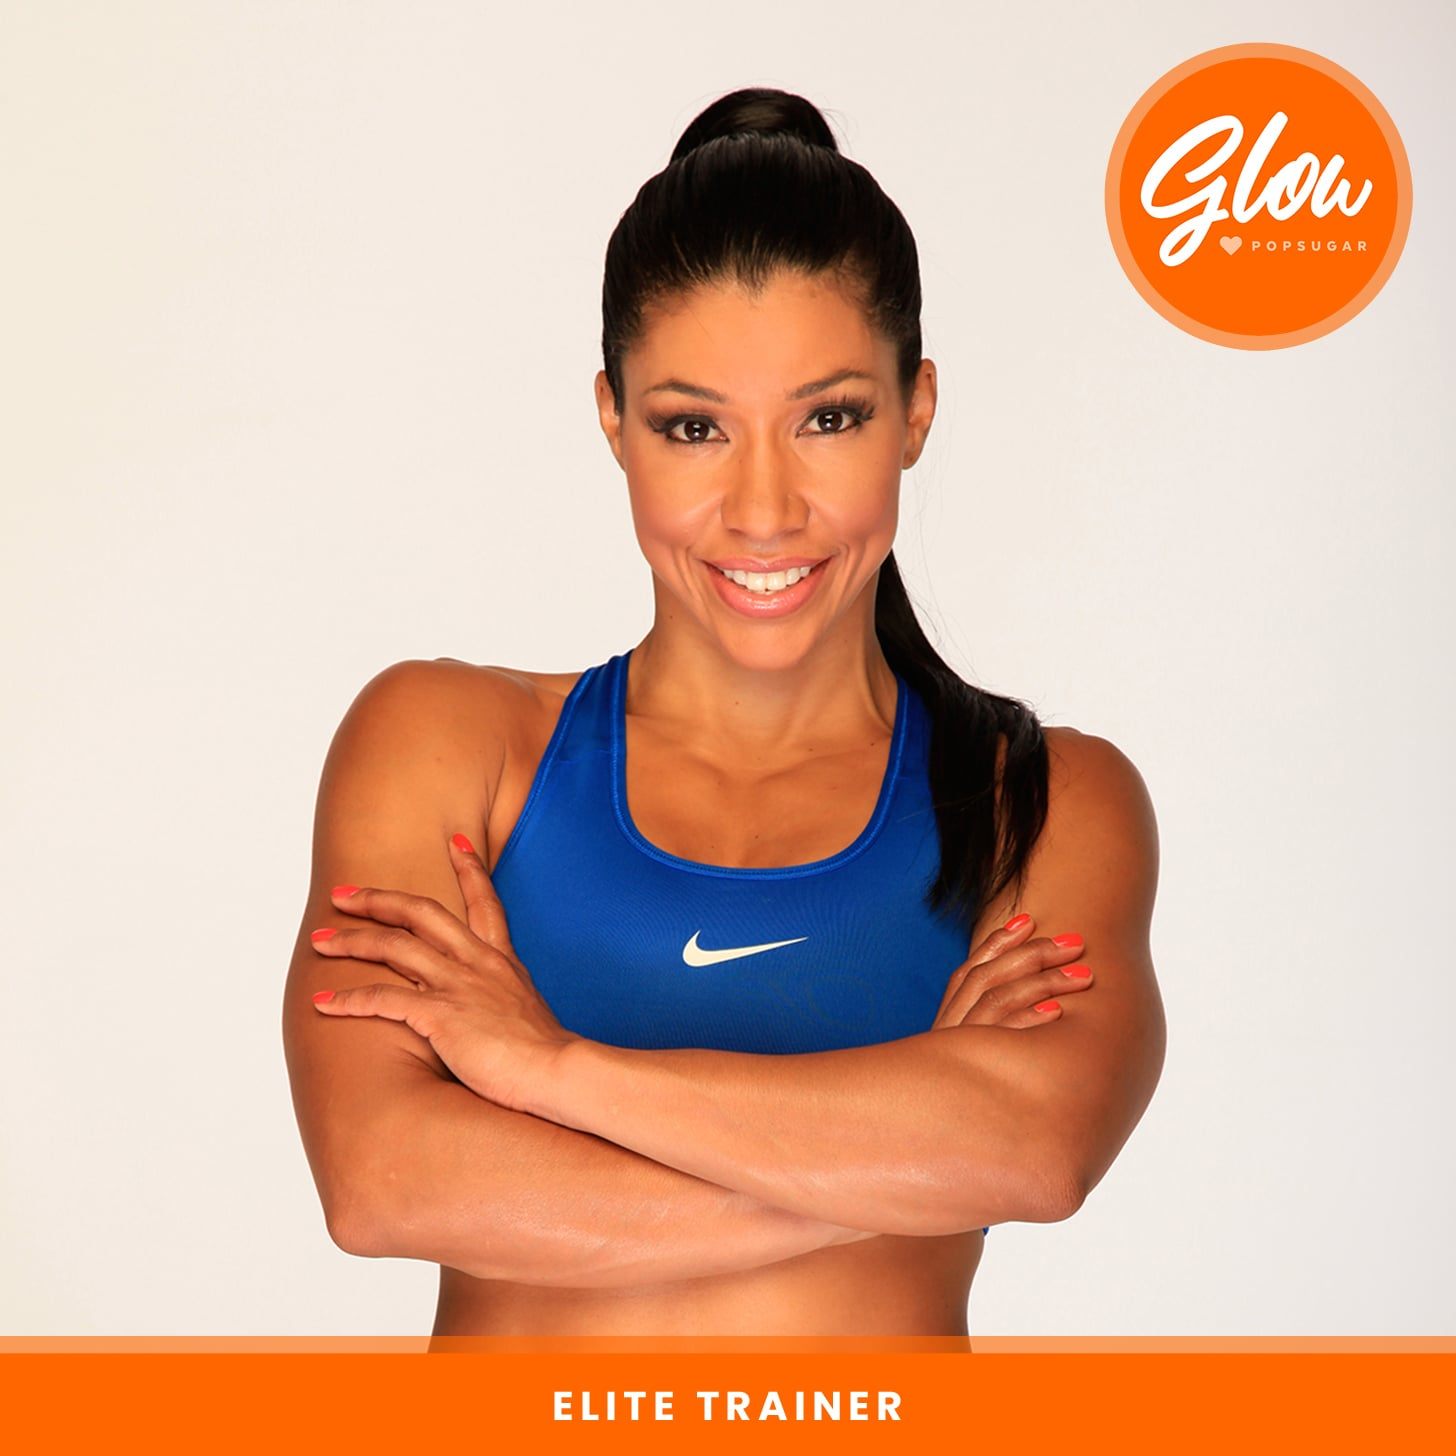 Make a Fitness Plan With The Hollywood Trainer Club on Glow